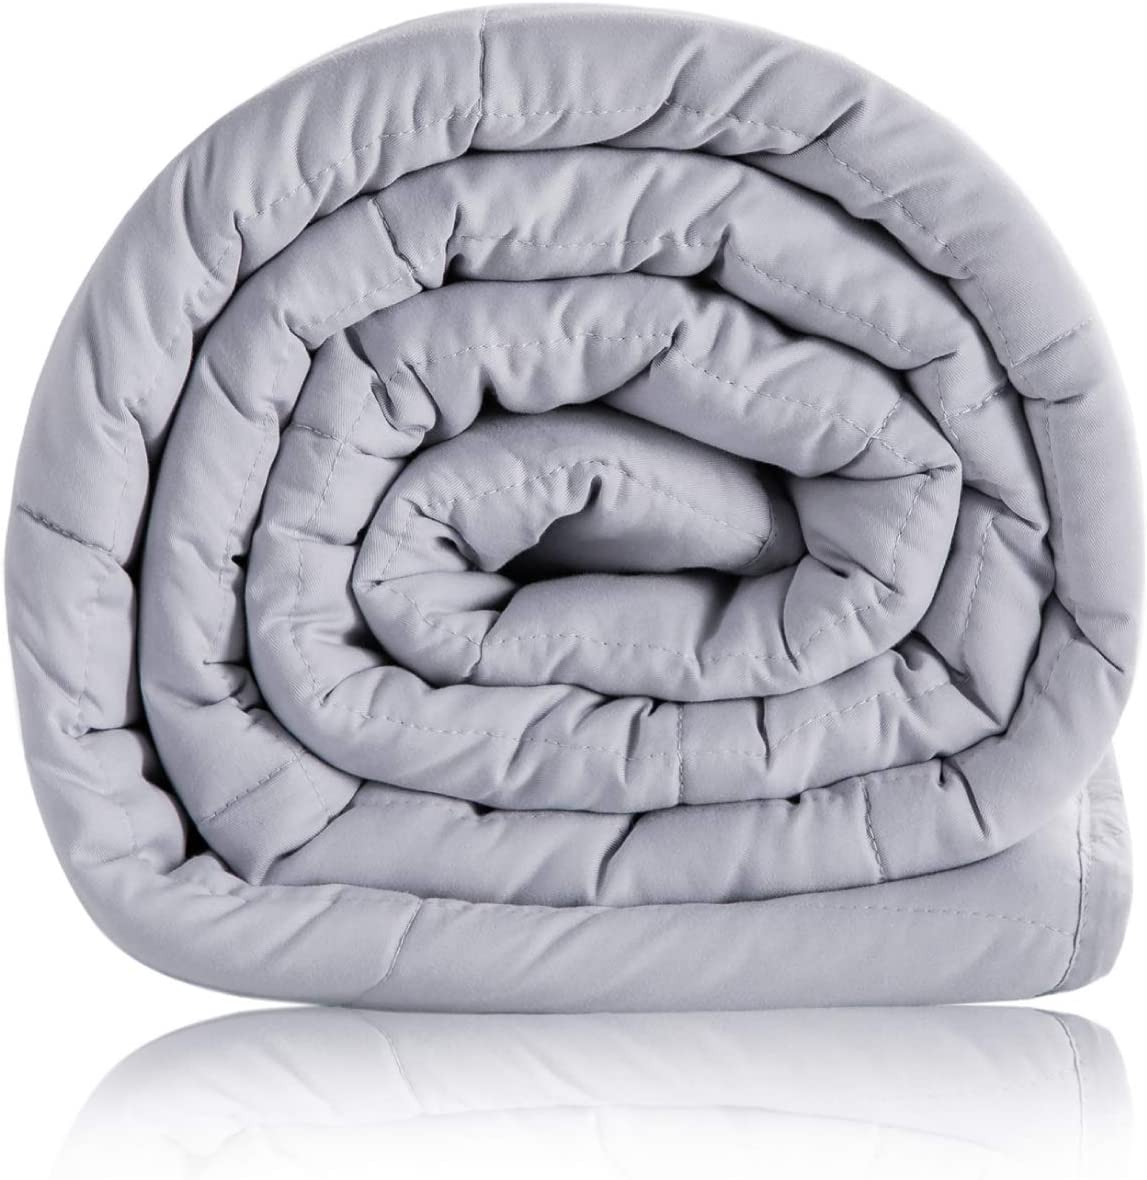 Bedsure Lowest price challenge Max 49% OFF Weighted Blanket 20 pounds - Queen 80 Weighte inch 60 x